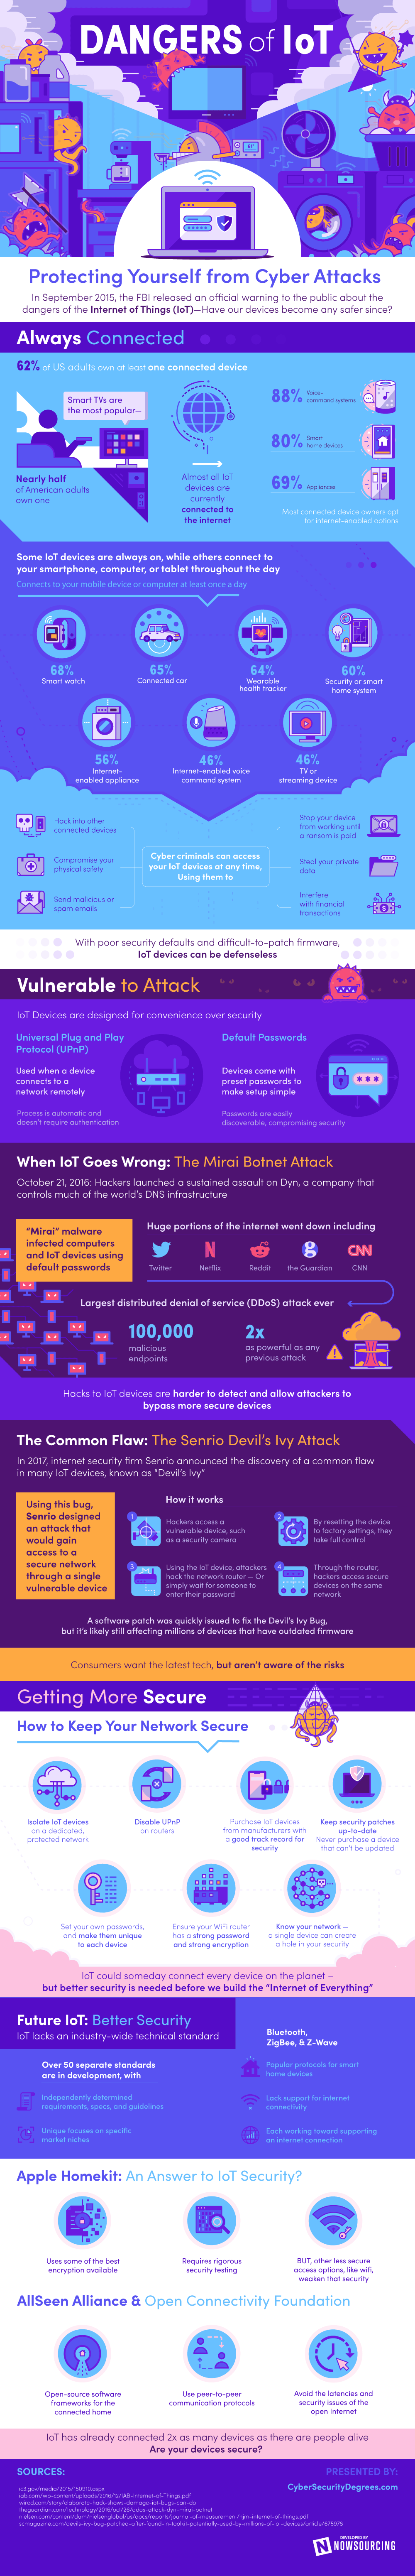 The Dangers of the Internet of Things [infographic]